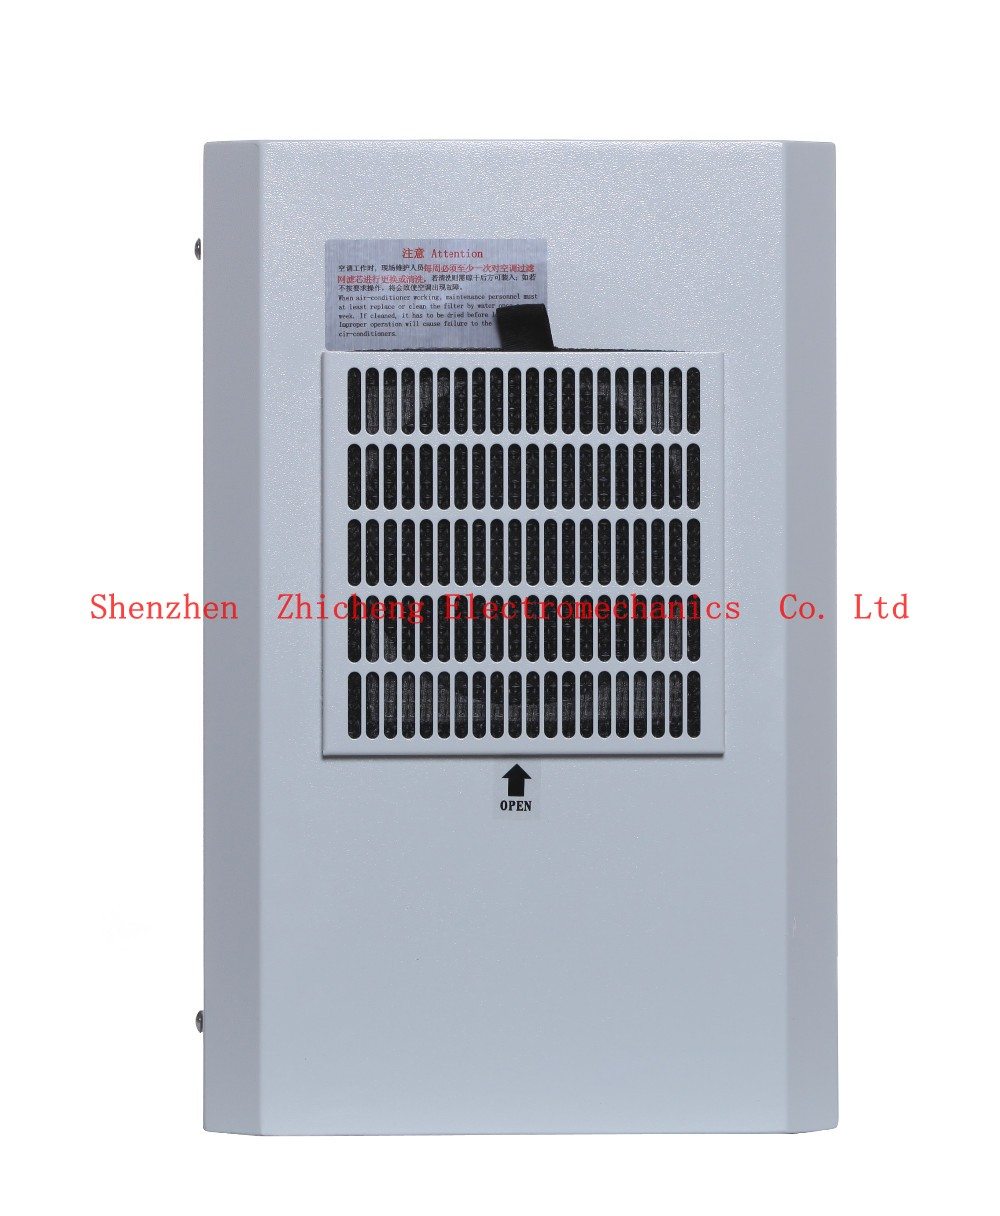 radiator heat exchanger Air Engraving CNC Cabinet air conditioner control cabinet wall cooler 11kw heating capacity r410a to water and 4 5mpa working pressure plate heat exchanger is used in r410a heat pump air conditioner